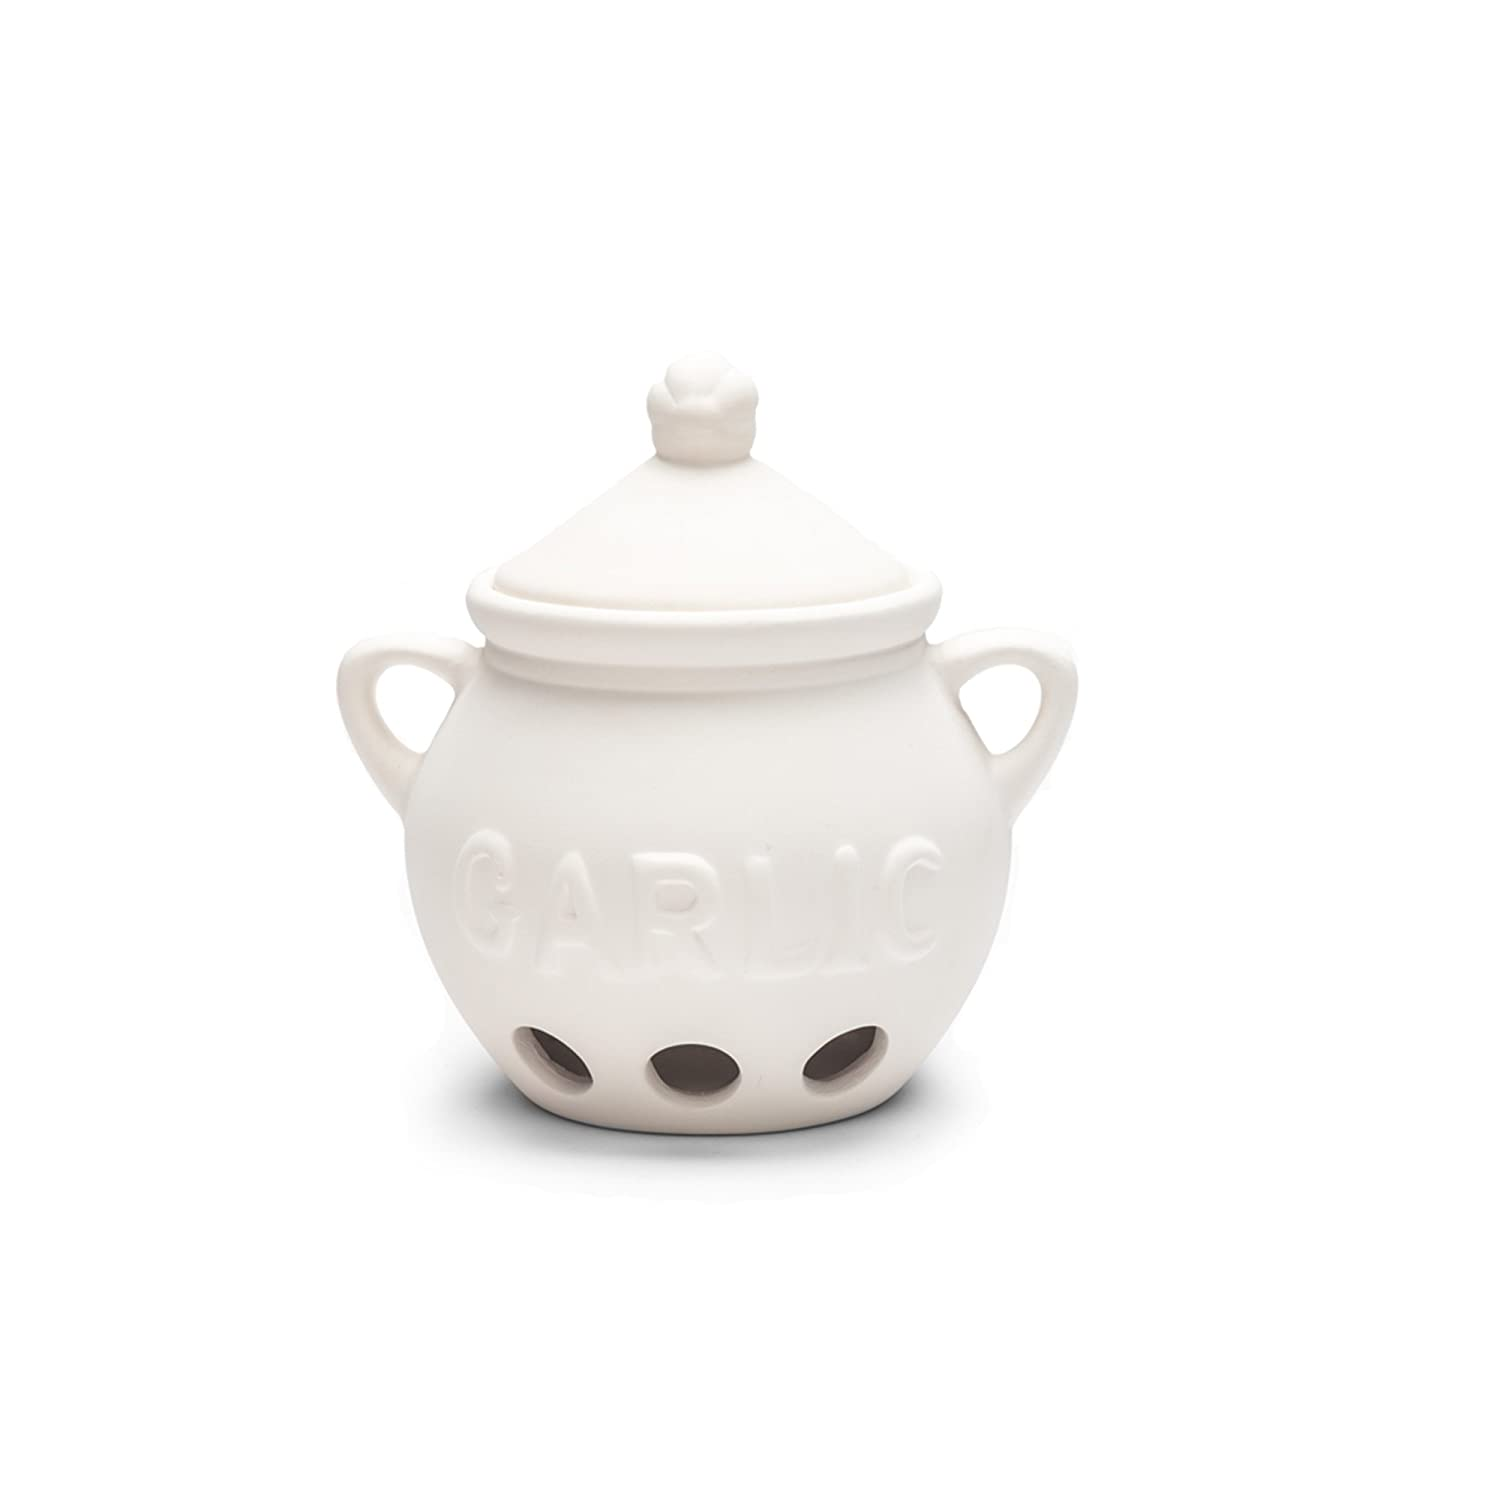 Fox Run 3971 Garlic Keeper, Ceramic, White